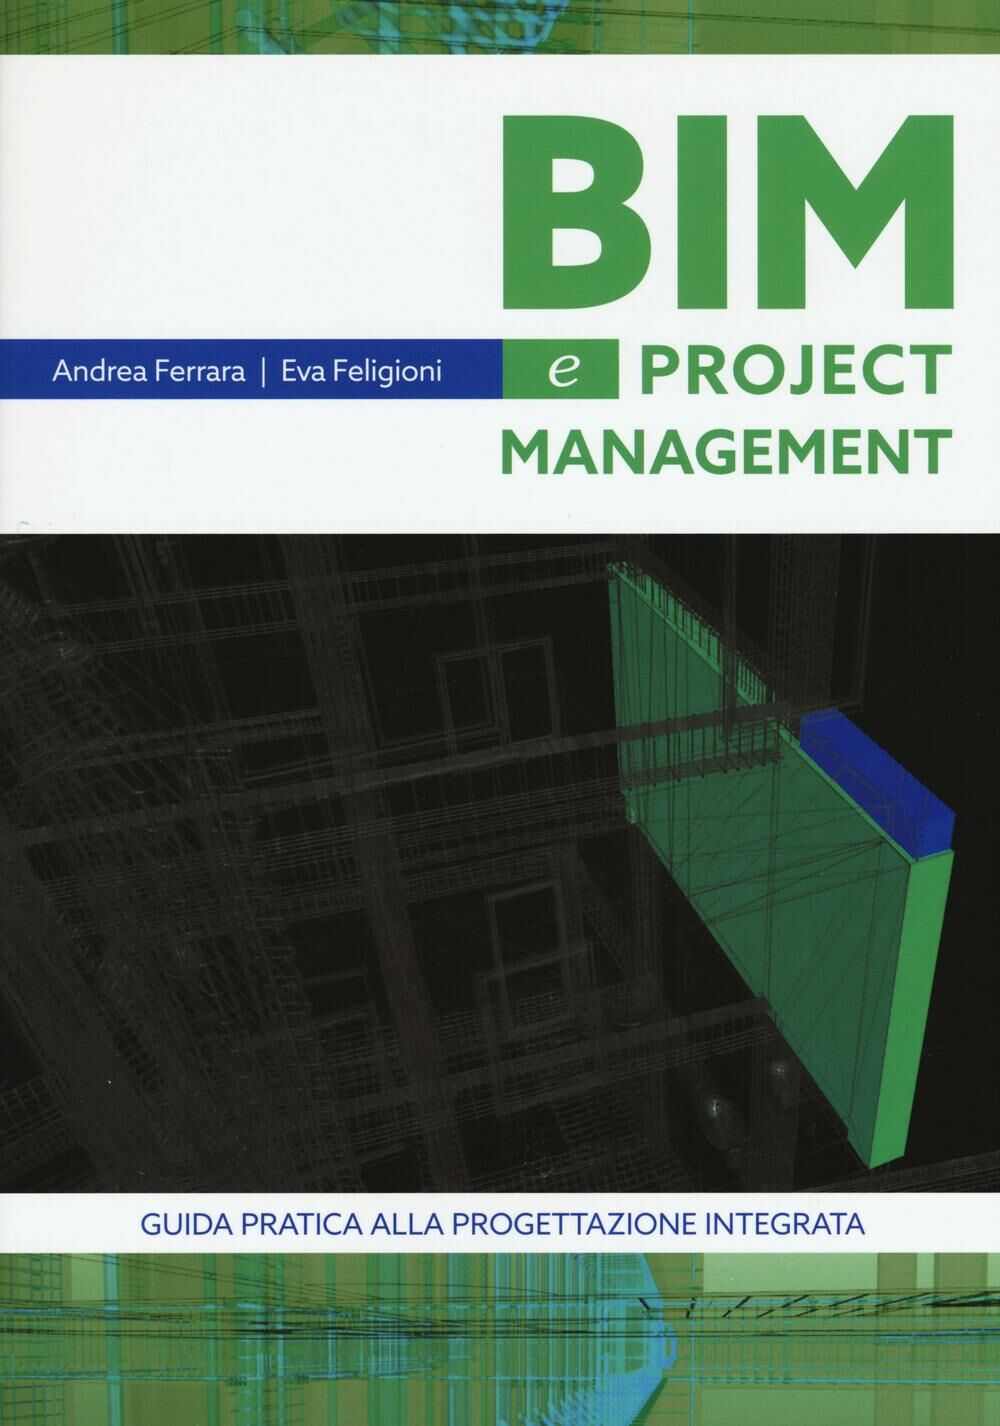 Bim e project management